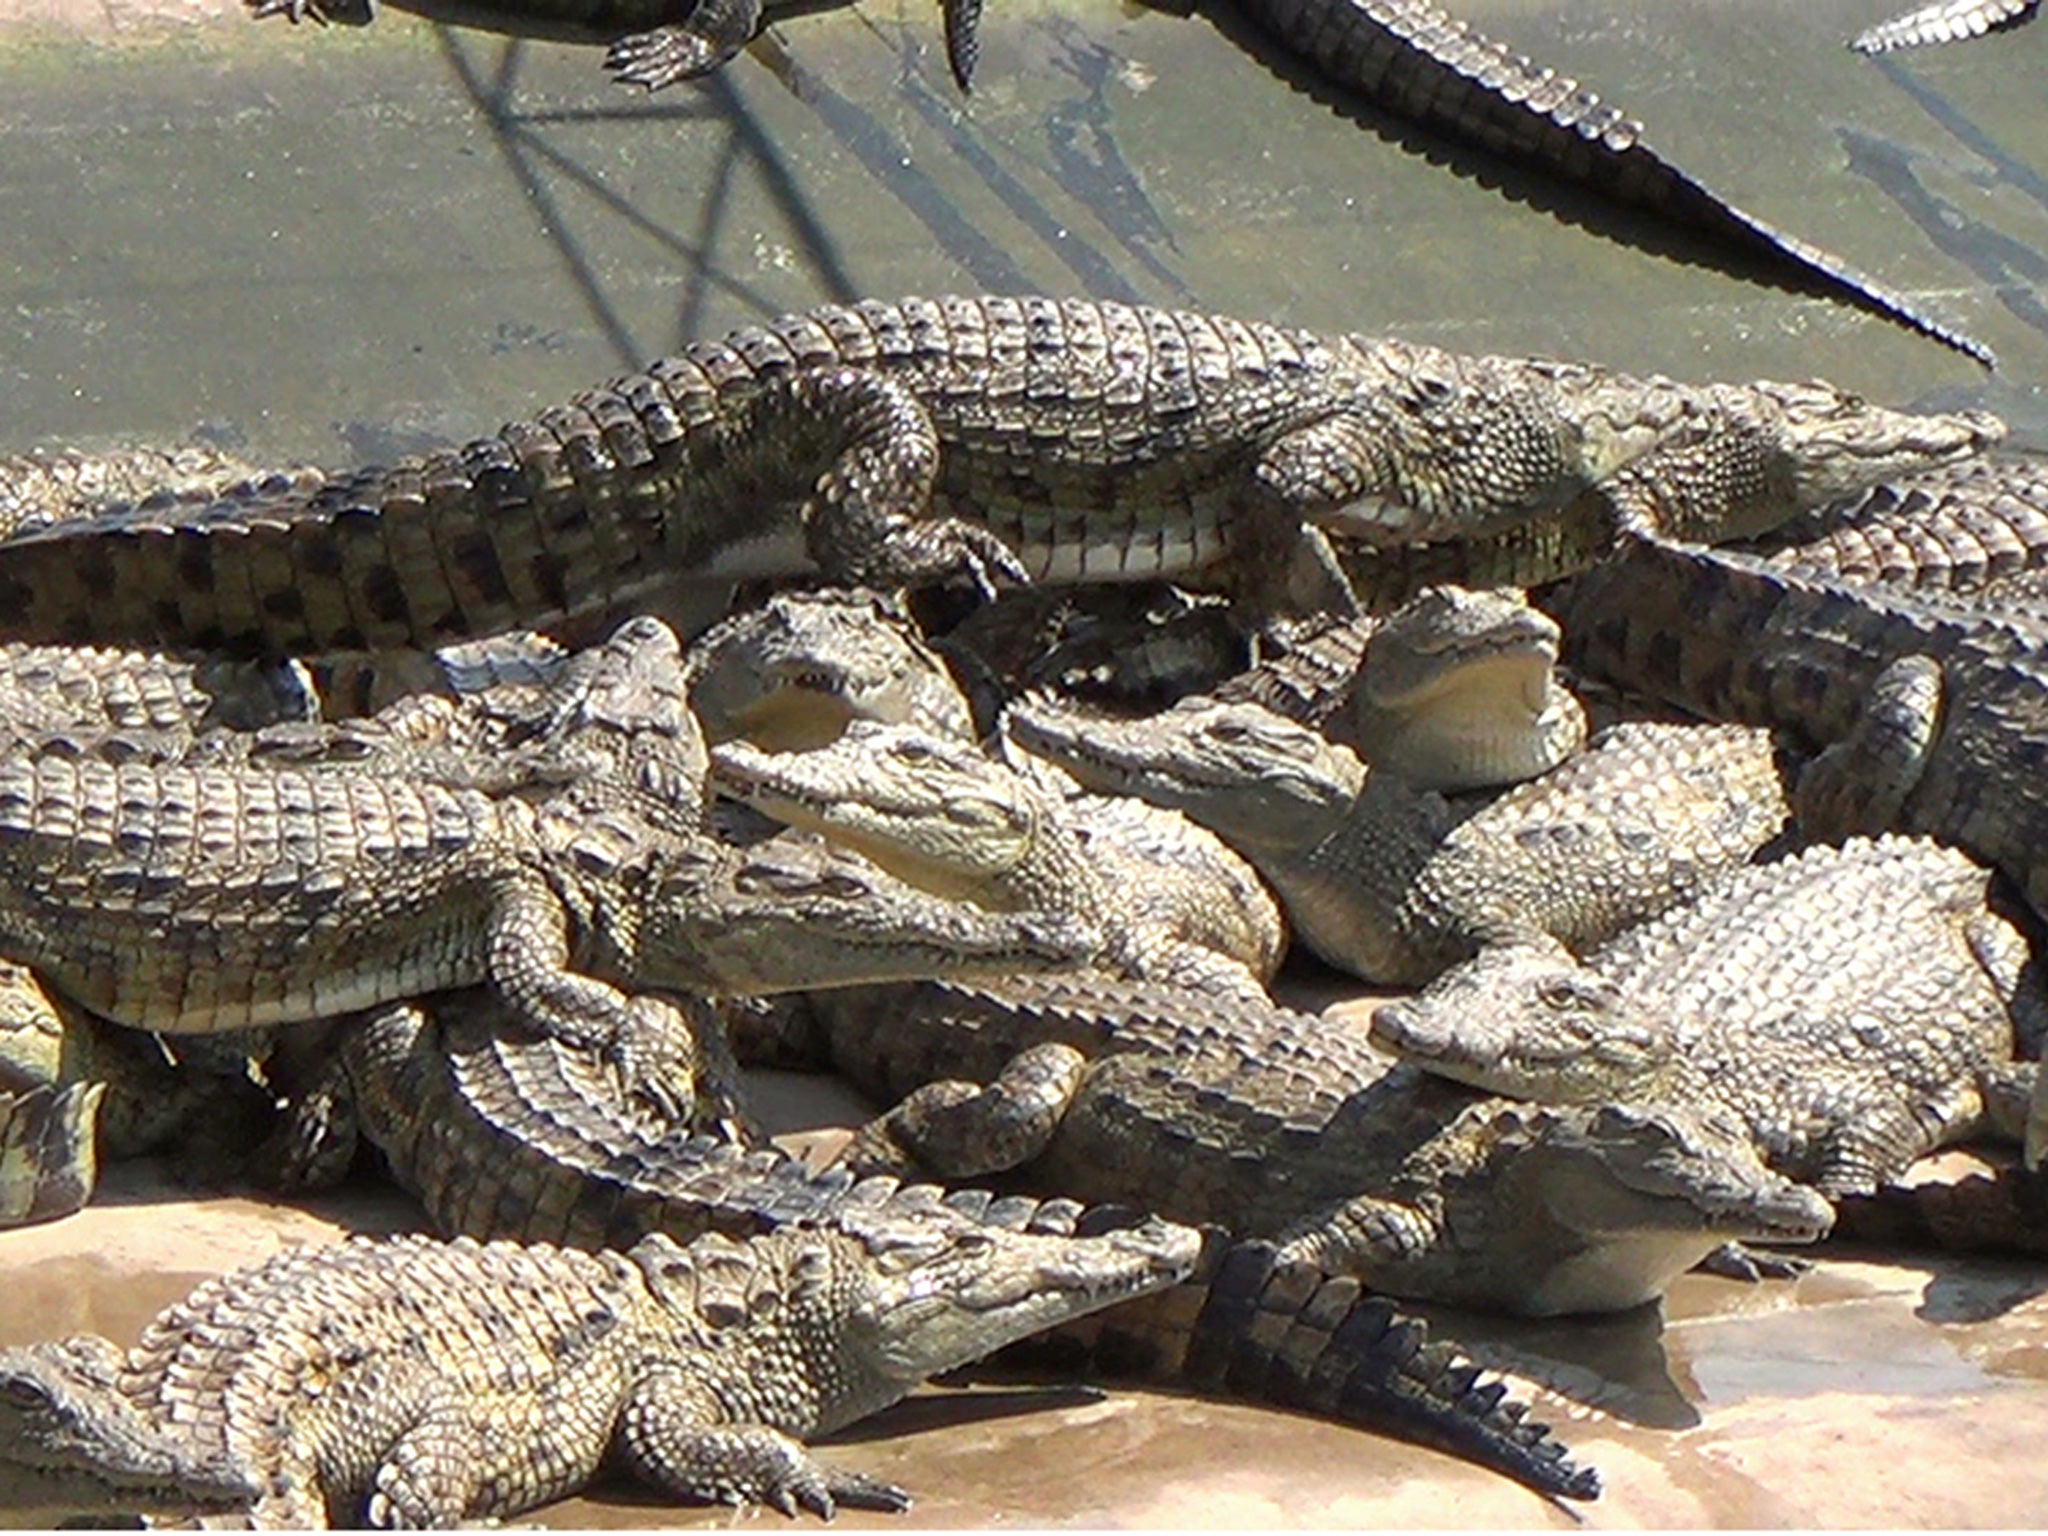 Honduras Latest News Breaking Stories And Comment The Independent Cut Engineer Crocodile Safety Steel Genuine Leather Brown 10000 Crocodiles Starving To Death On A Farm In